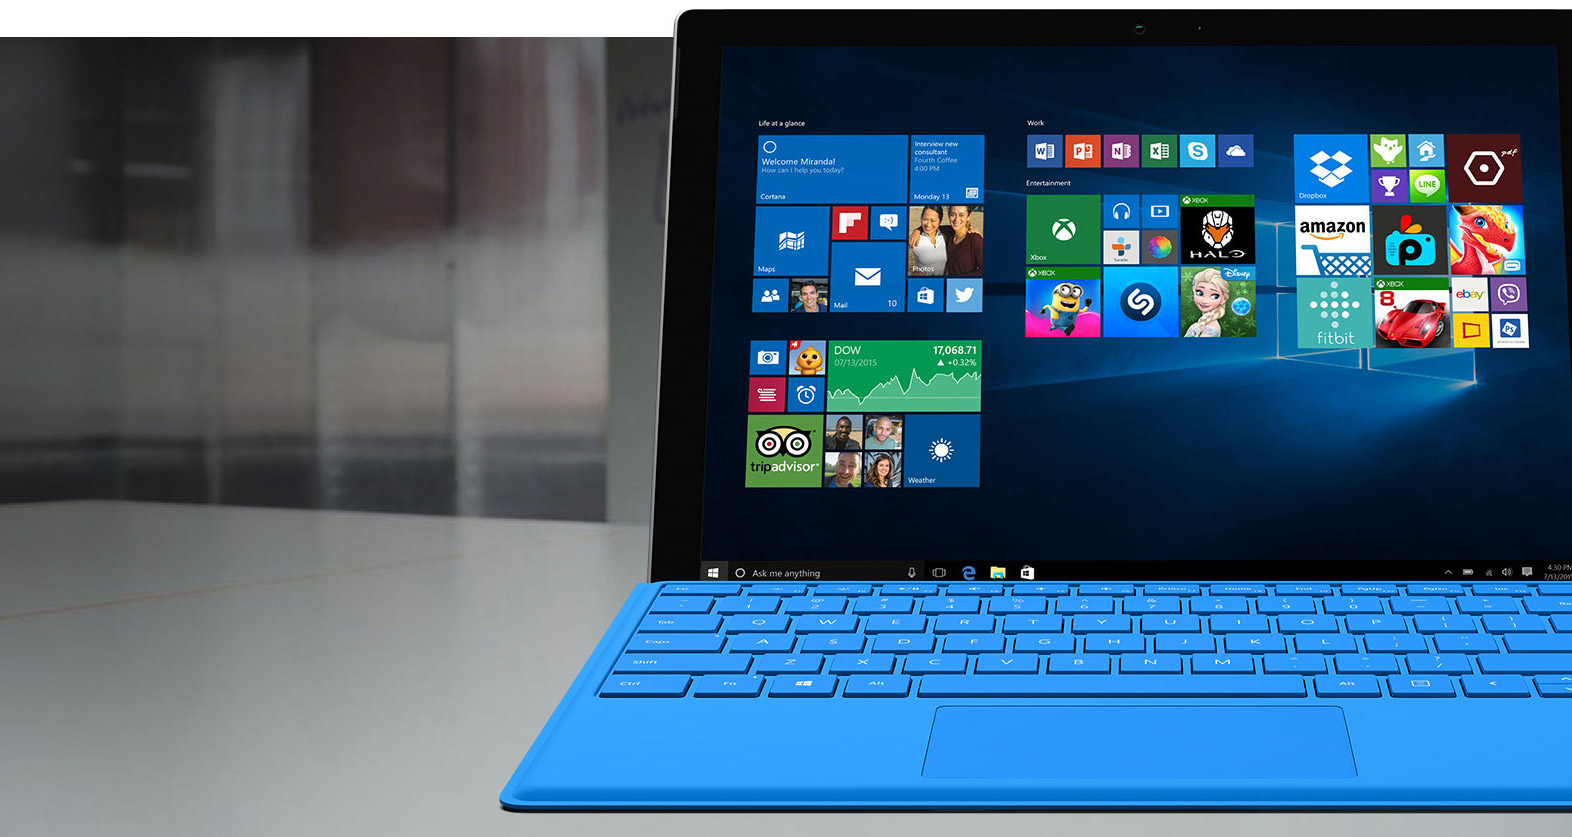 Microsoft Surface Pro 4 launched in India starting at Rs. 89,990